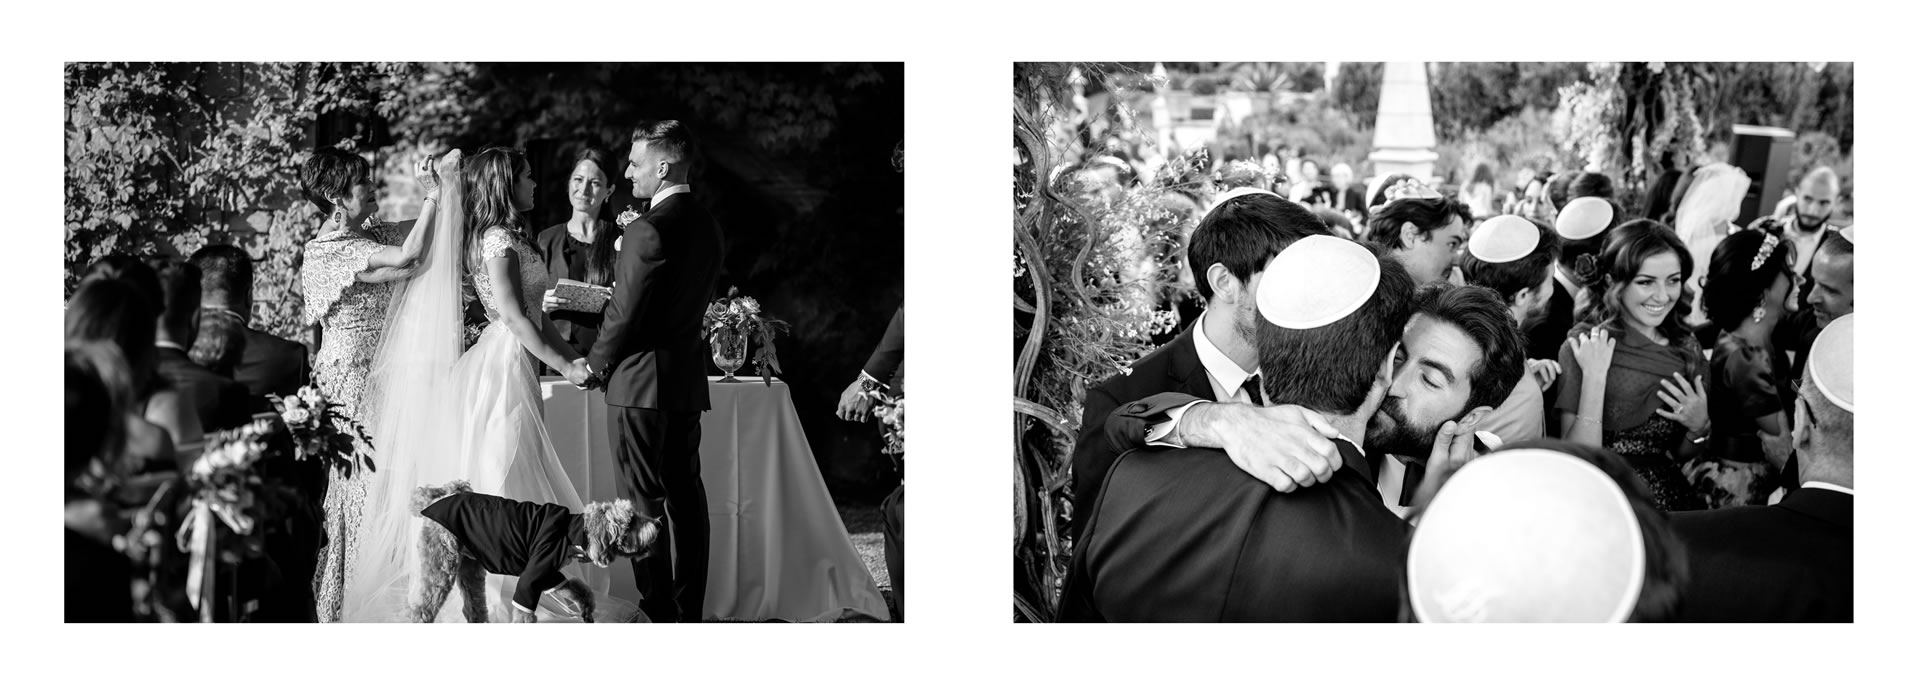 - 22 :: BEST OF 2018 WEDDING: A COLLECTION TO TELL ONE YEAR STORY :: Luxury wedding photography - 21 ::  - 22